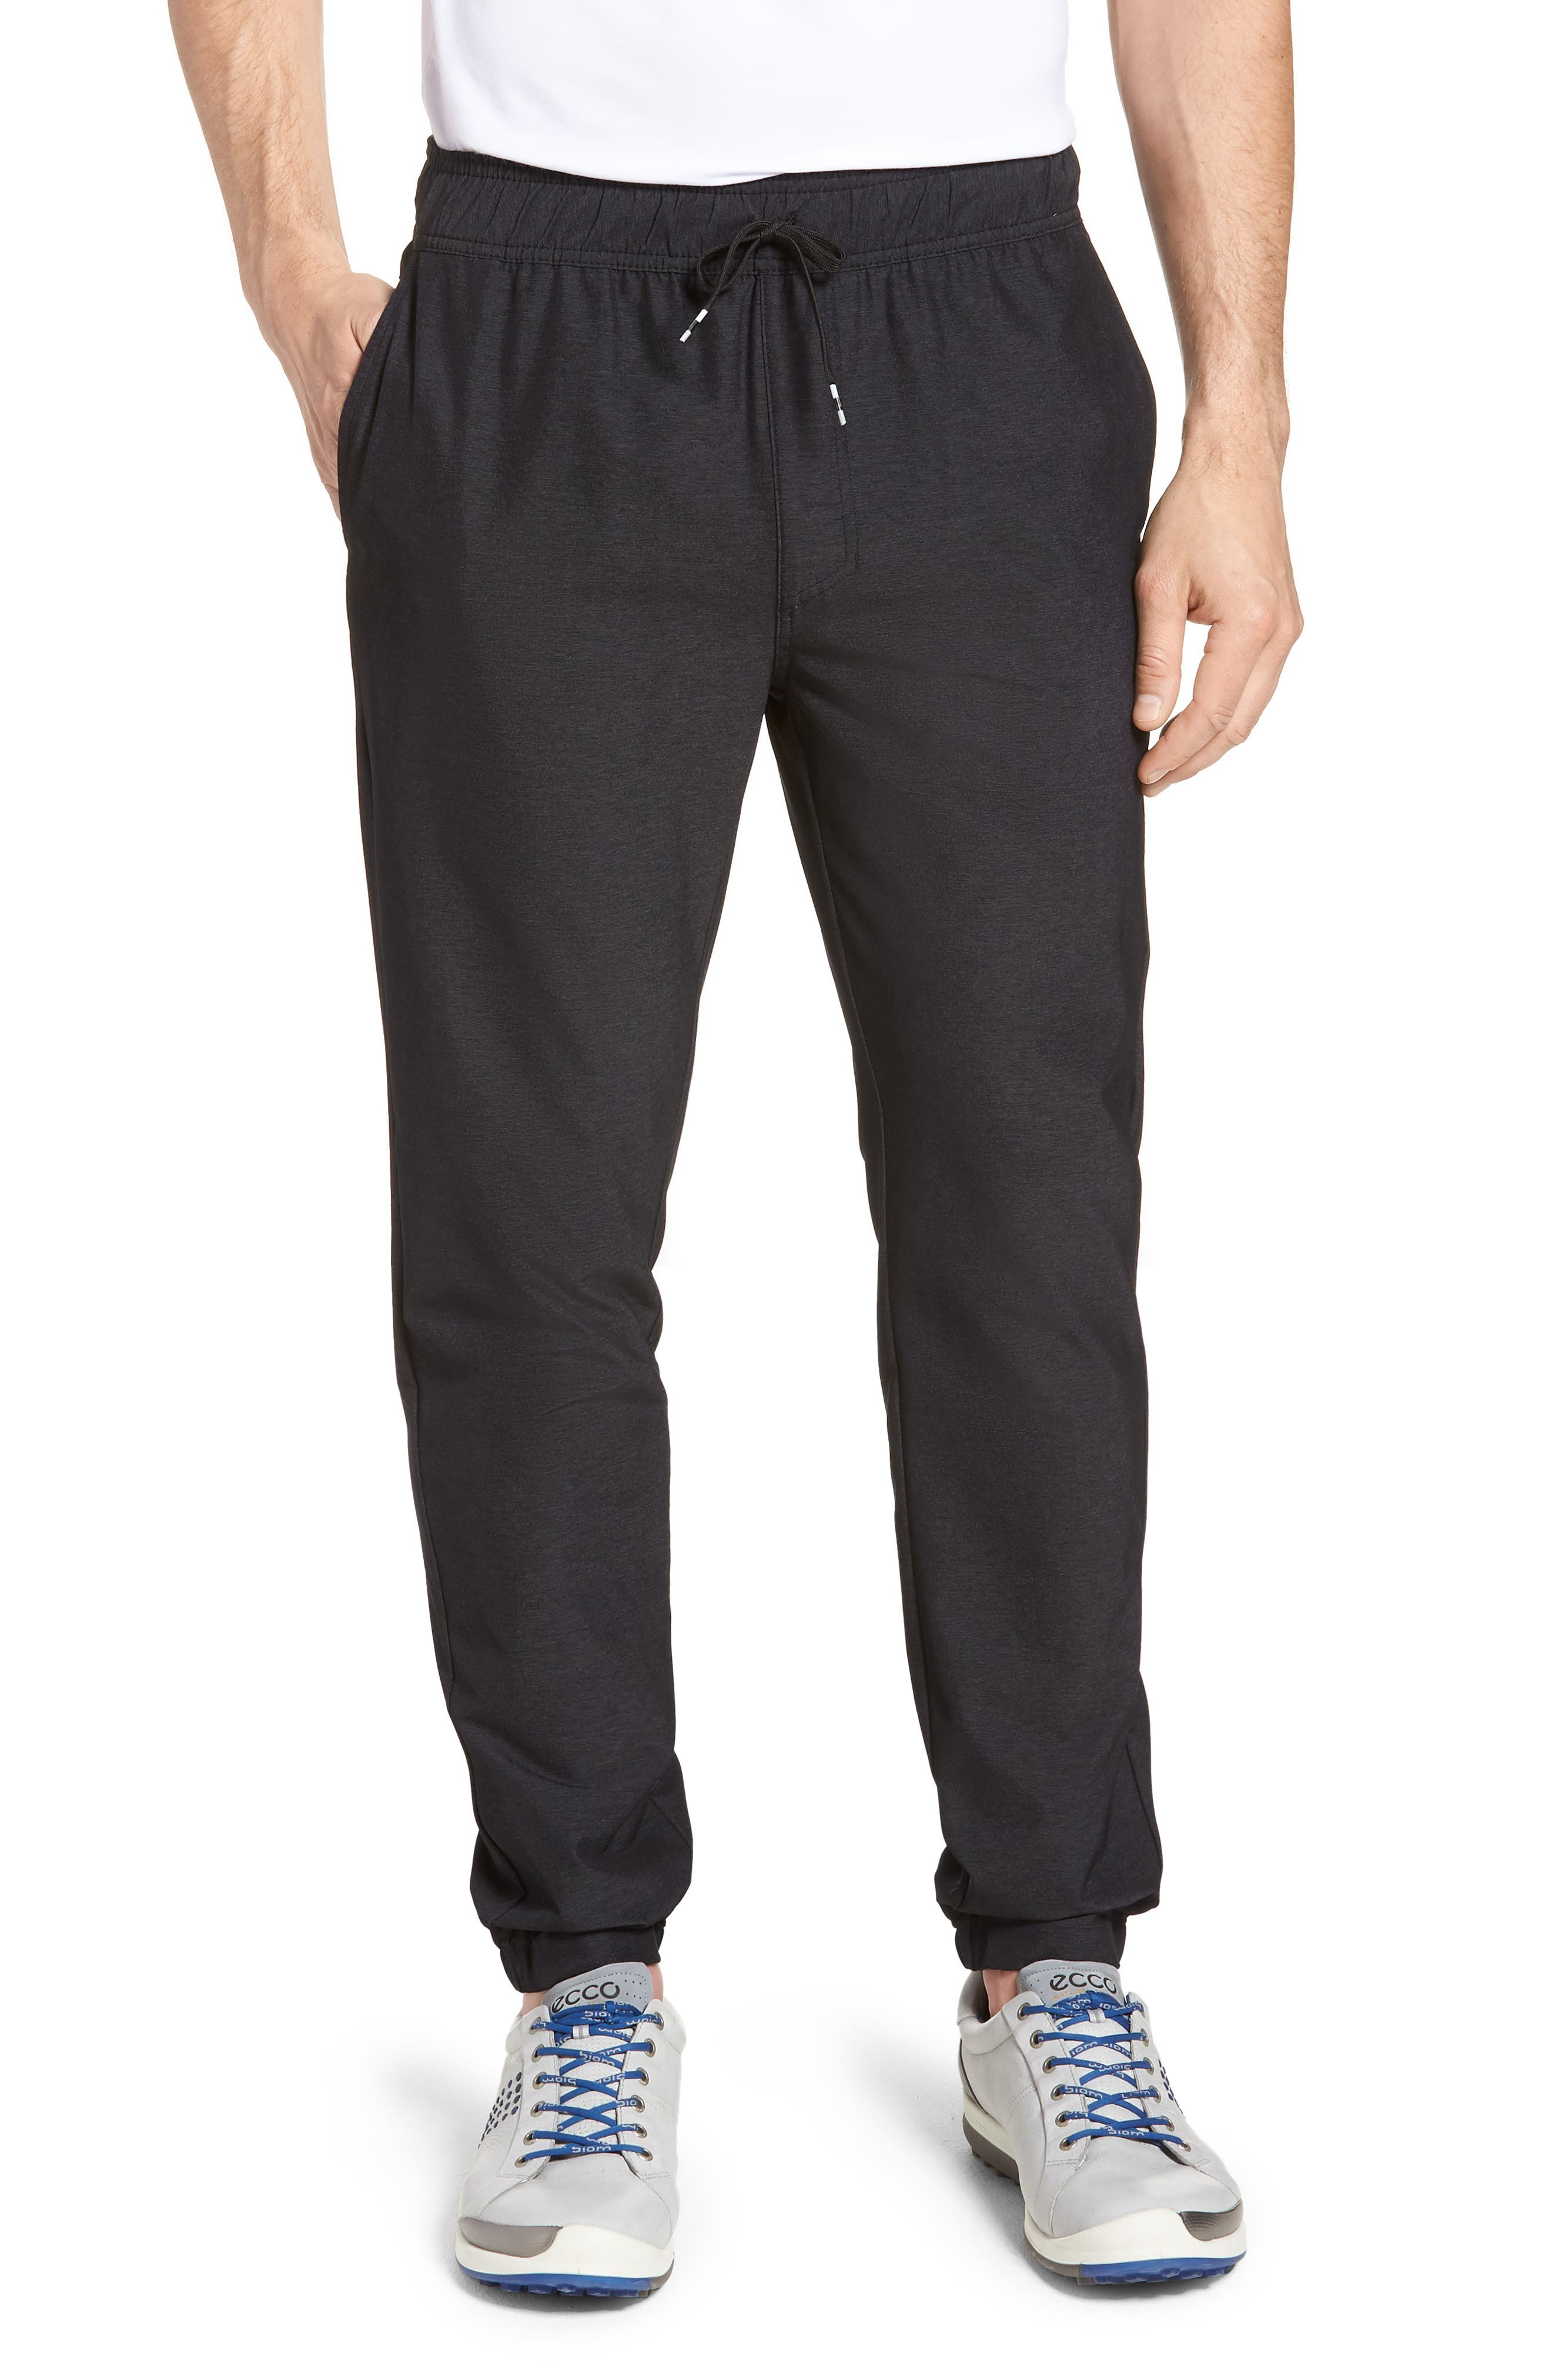 Relay Lounge Pants,                         Main,                         color,